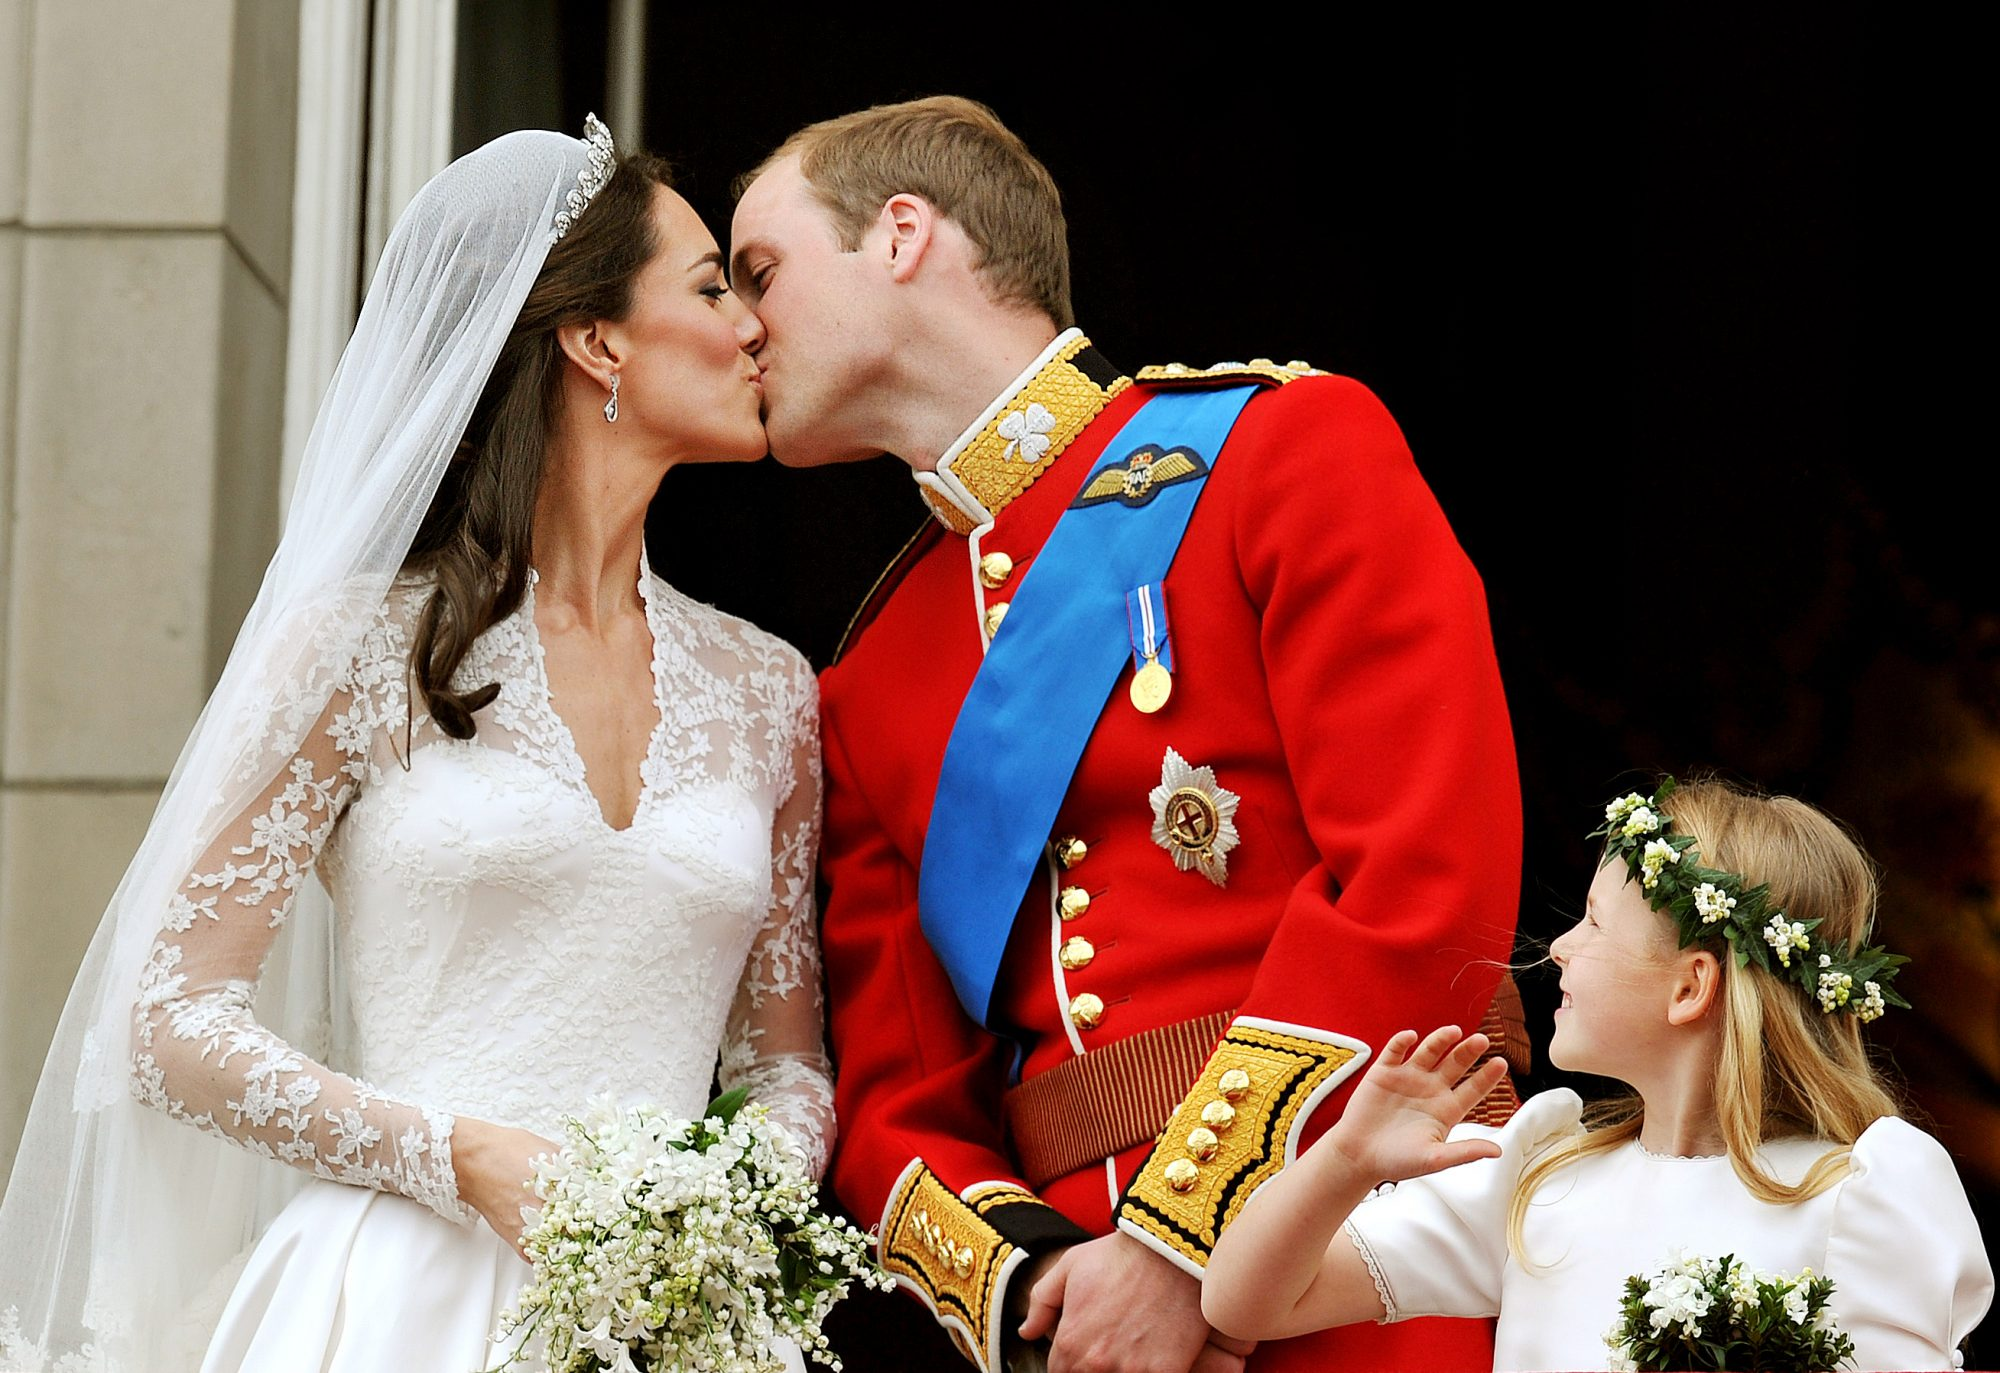 Prince William and Kate Middleton Celebrate Their Anniversary for the First Time as a Family of 5 gettyimages-113274298